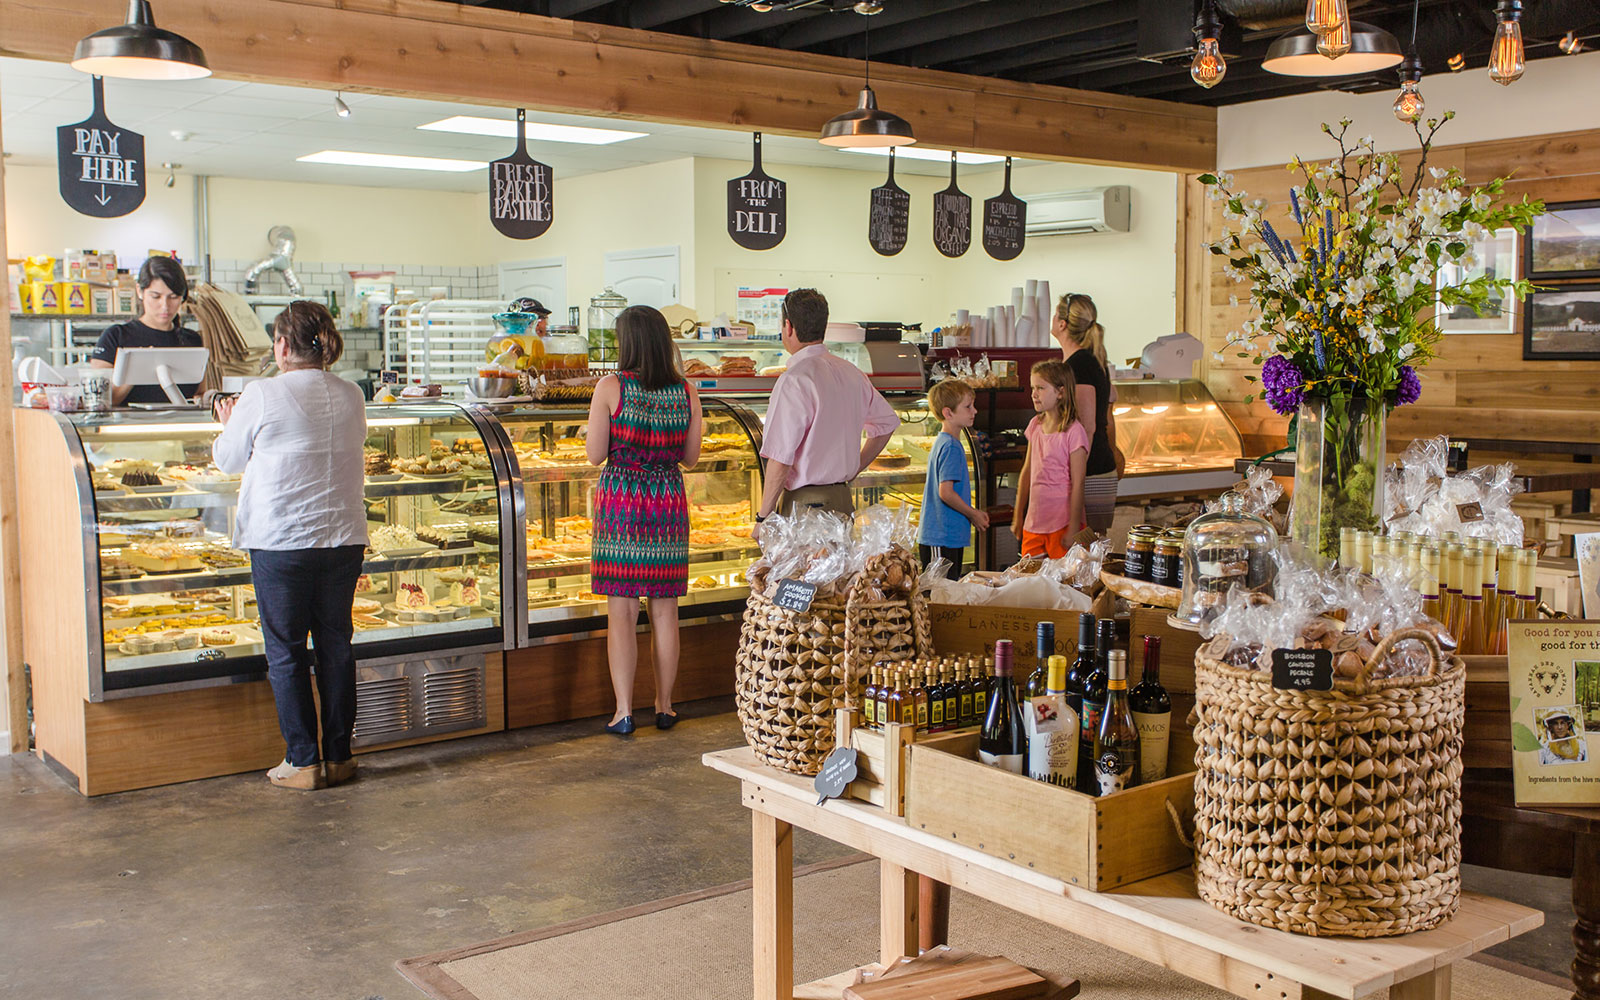 The 15 Best Small-Town Bakeries: Del Sur Bakery on St. Simons Island, Georgia